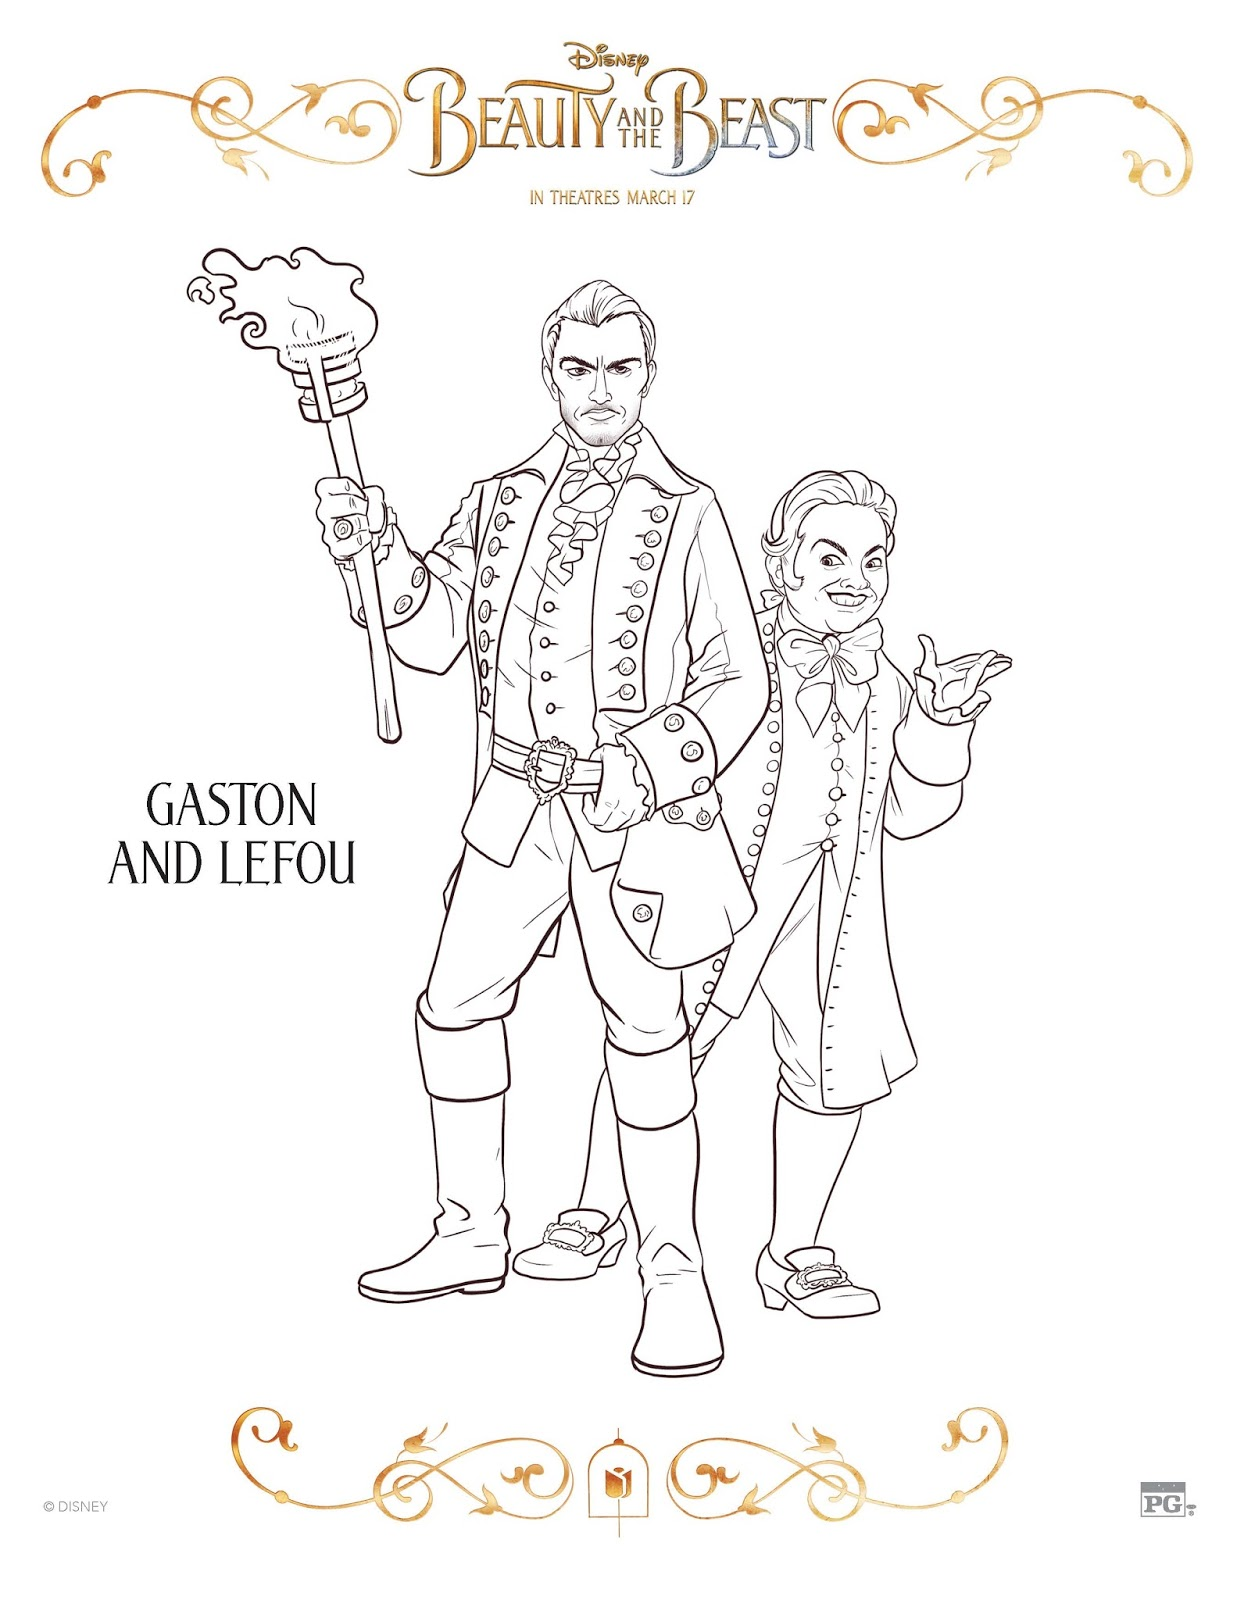 FREE BEAUTY AND THE BEAST COLORING SHEET